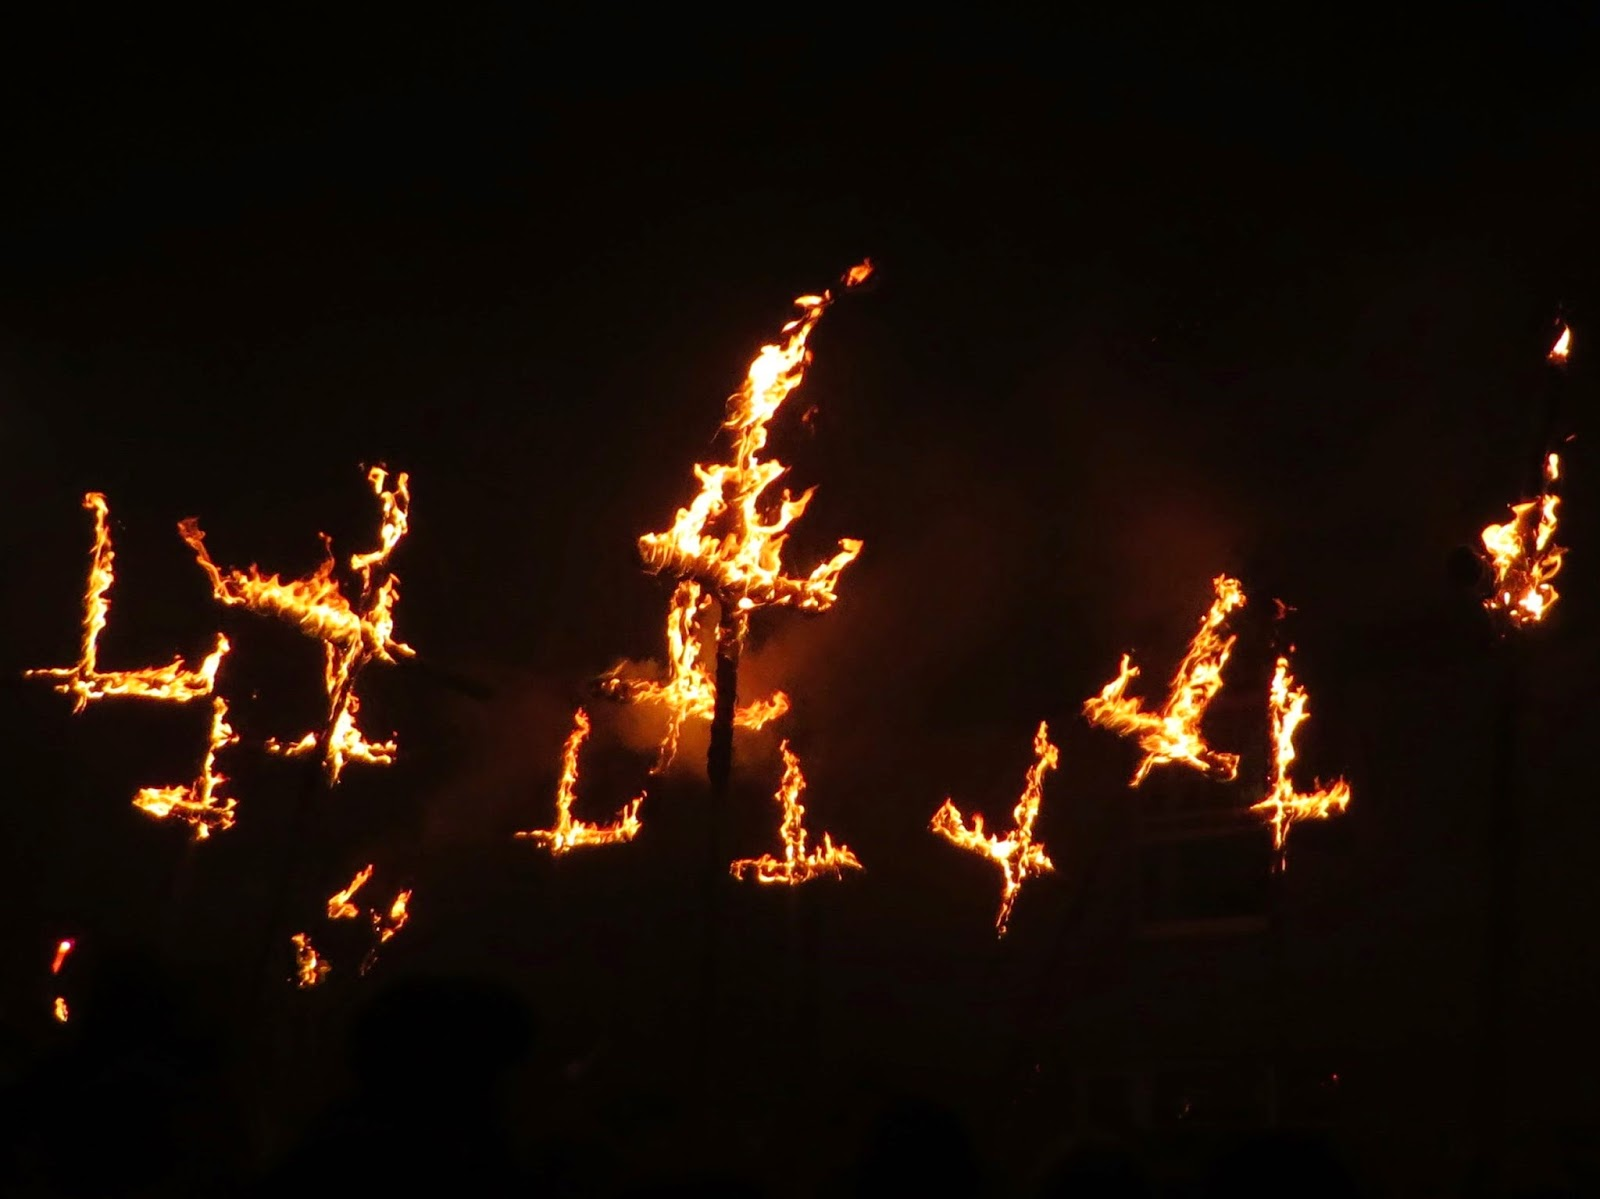 Lewes bonfire night, lewes bonfire procession, the fifth, 5th november, Guy Fawkes night, fire, torches, Lewes, Sussex, flaming torch, must do, Lewes burning crosses